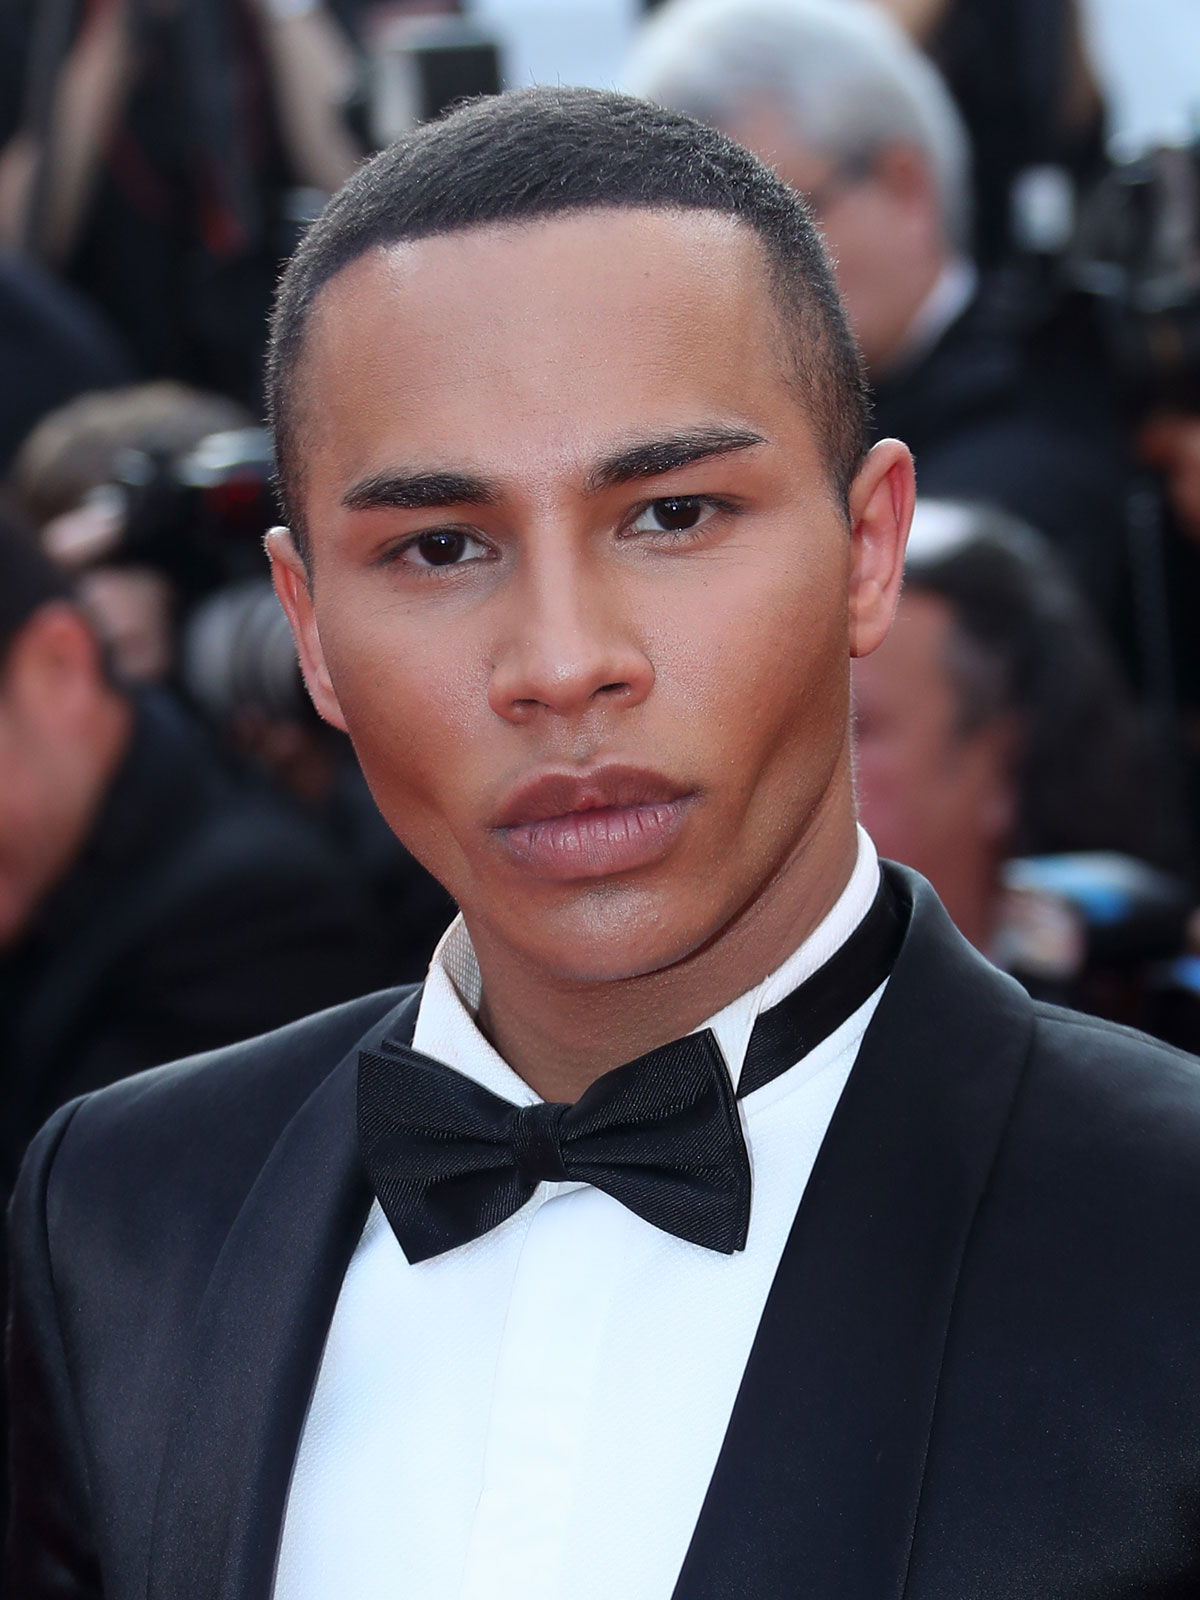 18 hours ago· olivier rousteing, the creative director of fashion house balmain, disclosed his secret ordeal in an instagram post, along with a picture of himself at … Olivier Rousteing - AlloCiné